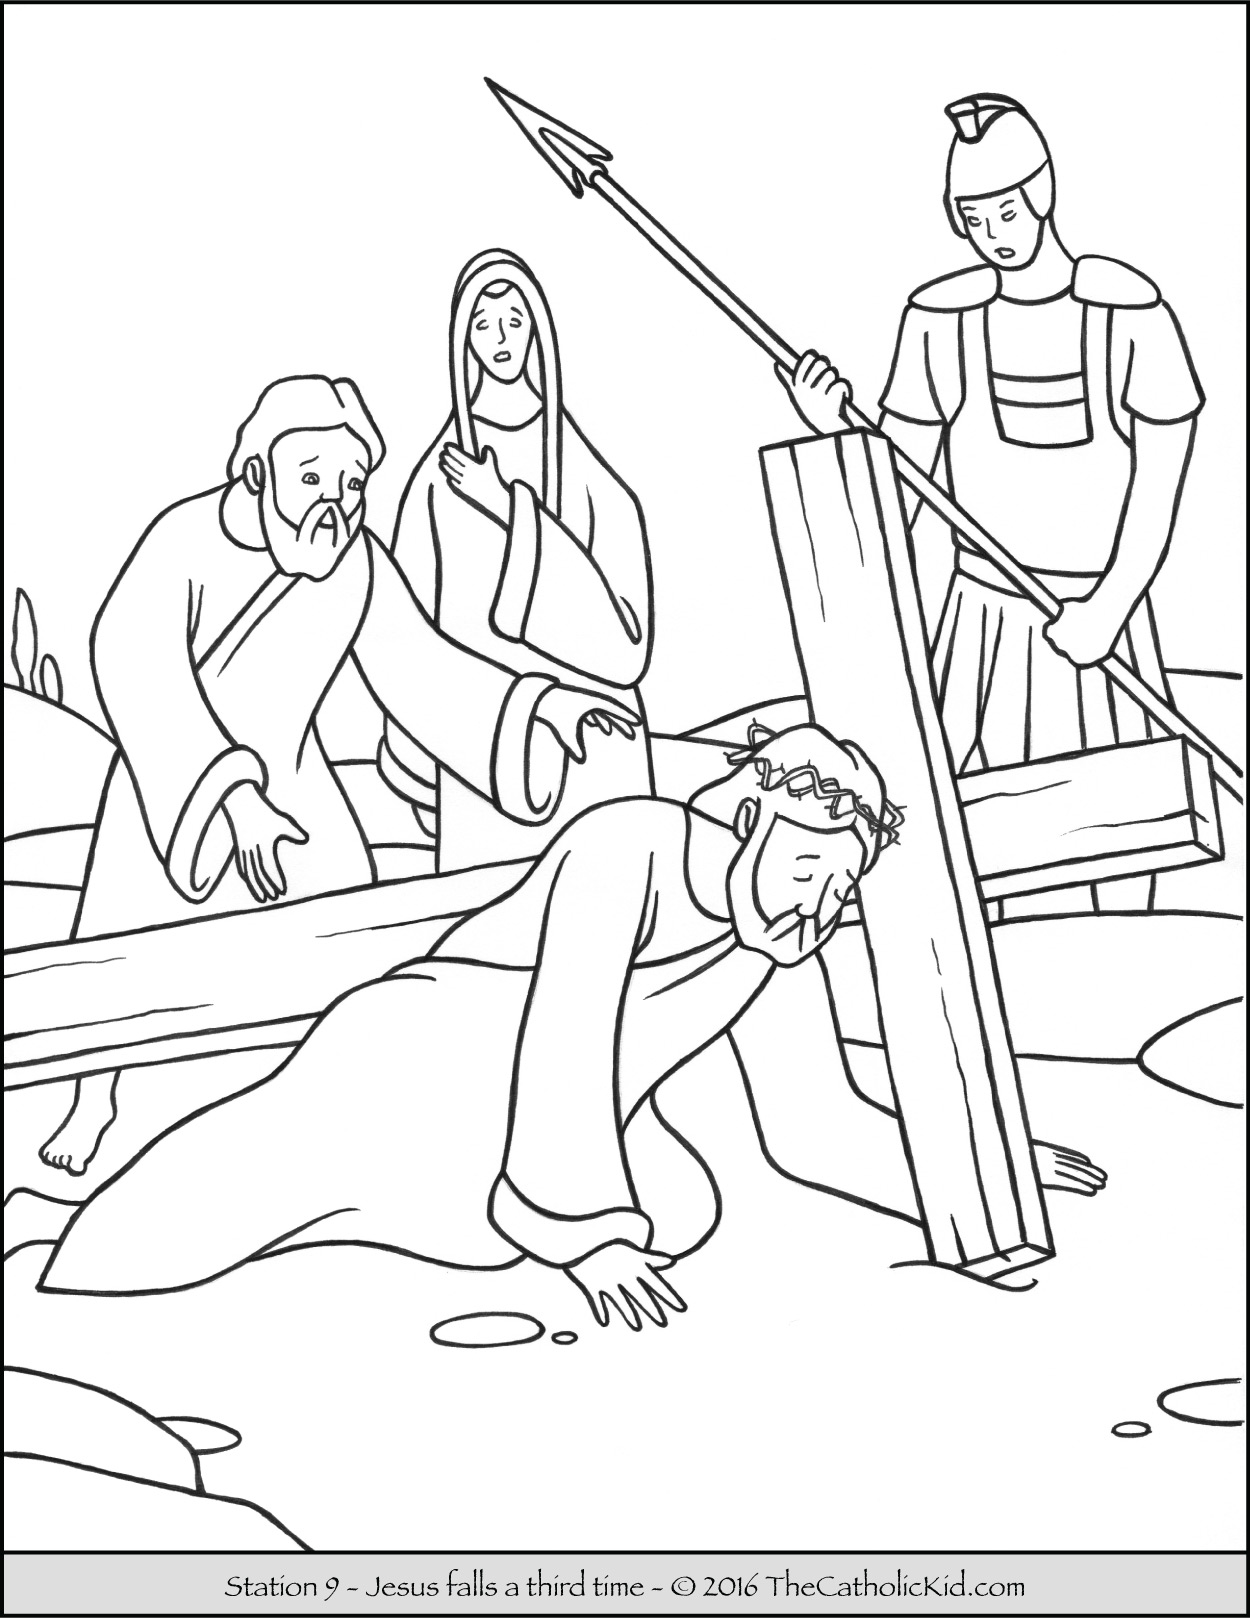 Jesus On The Cross Coloring Pages Printable At Getdrawings Com